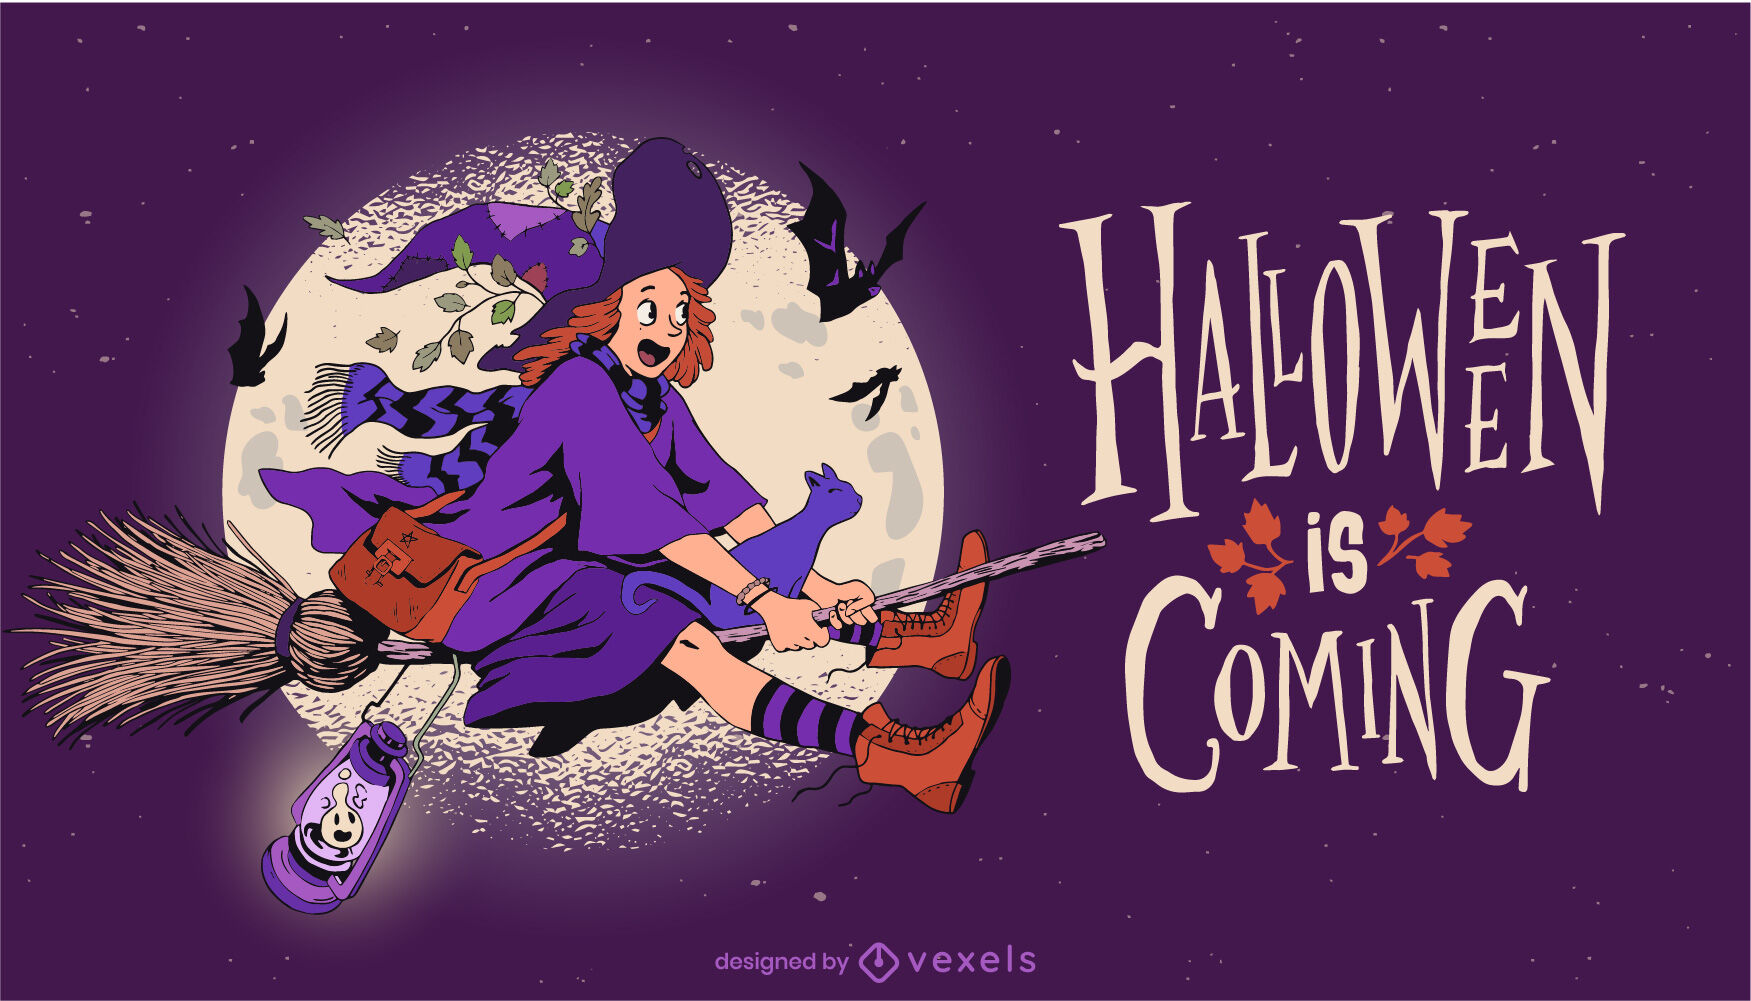 Witch flying halloween holiday illustration